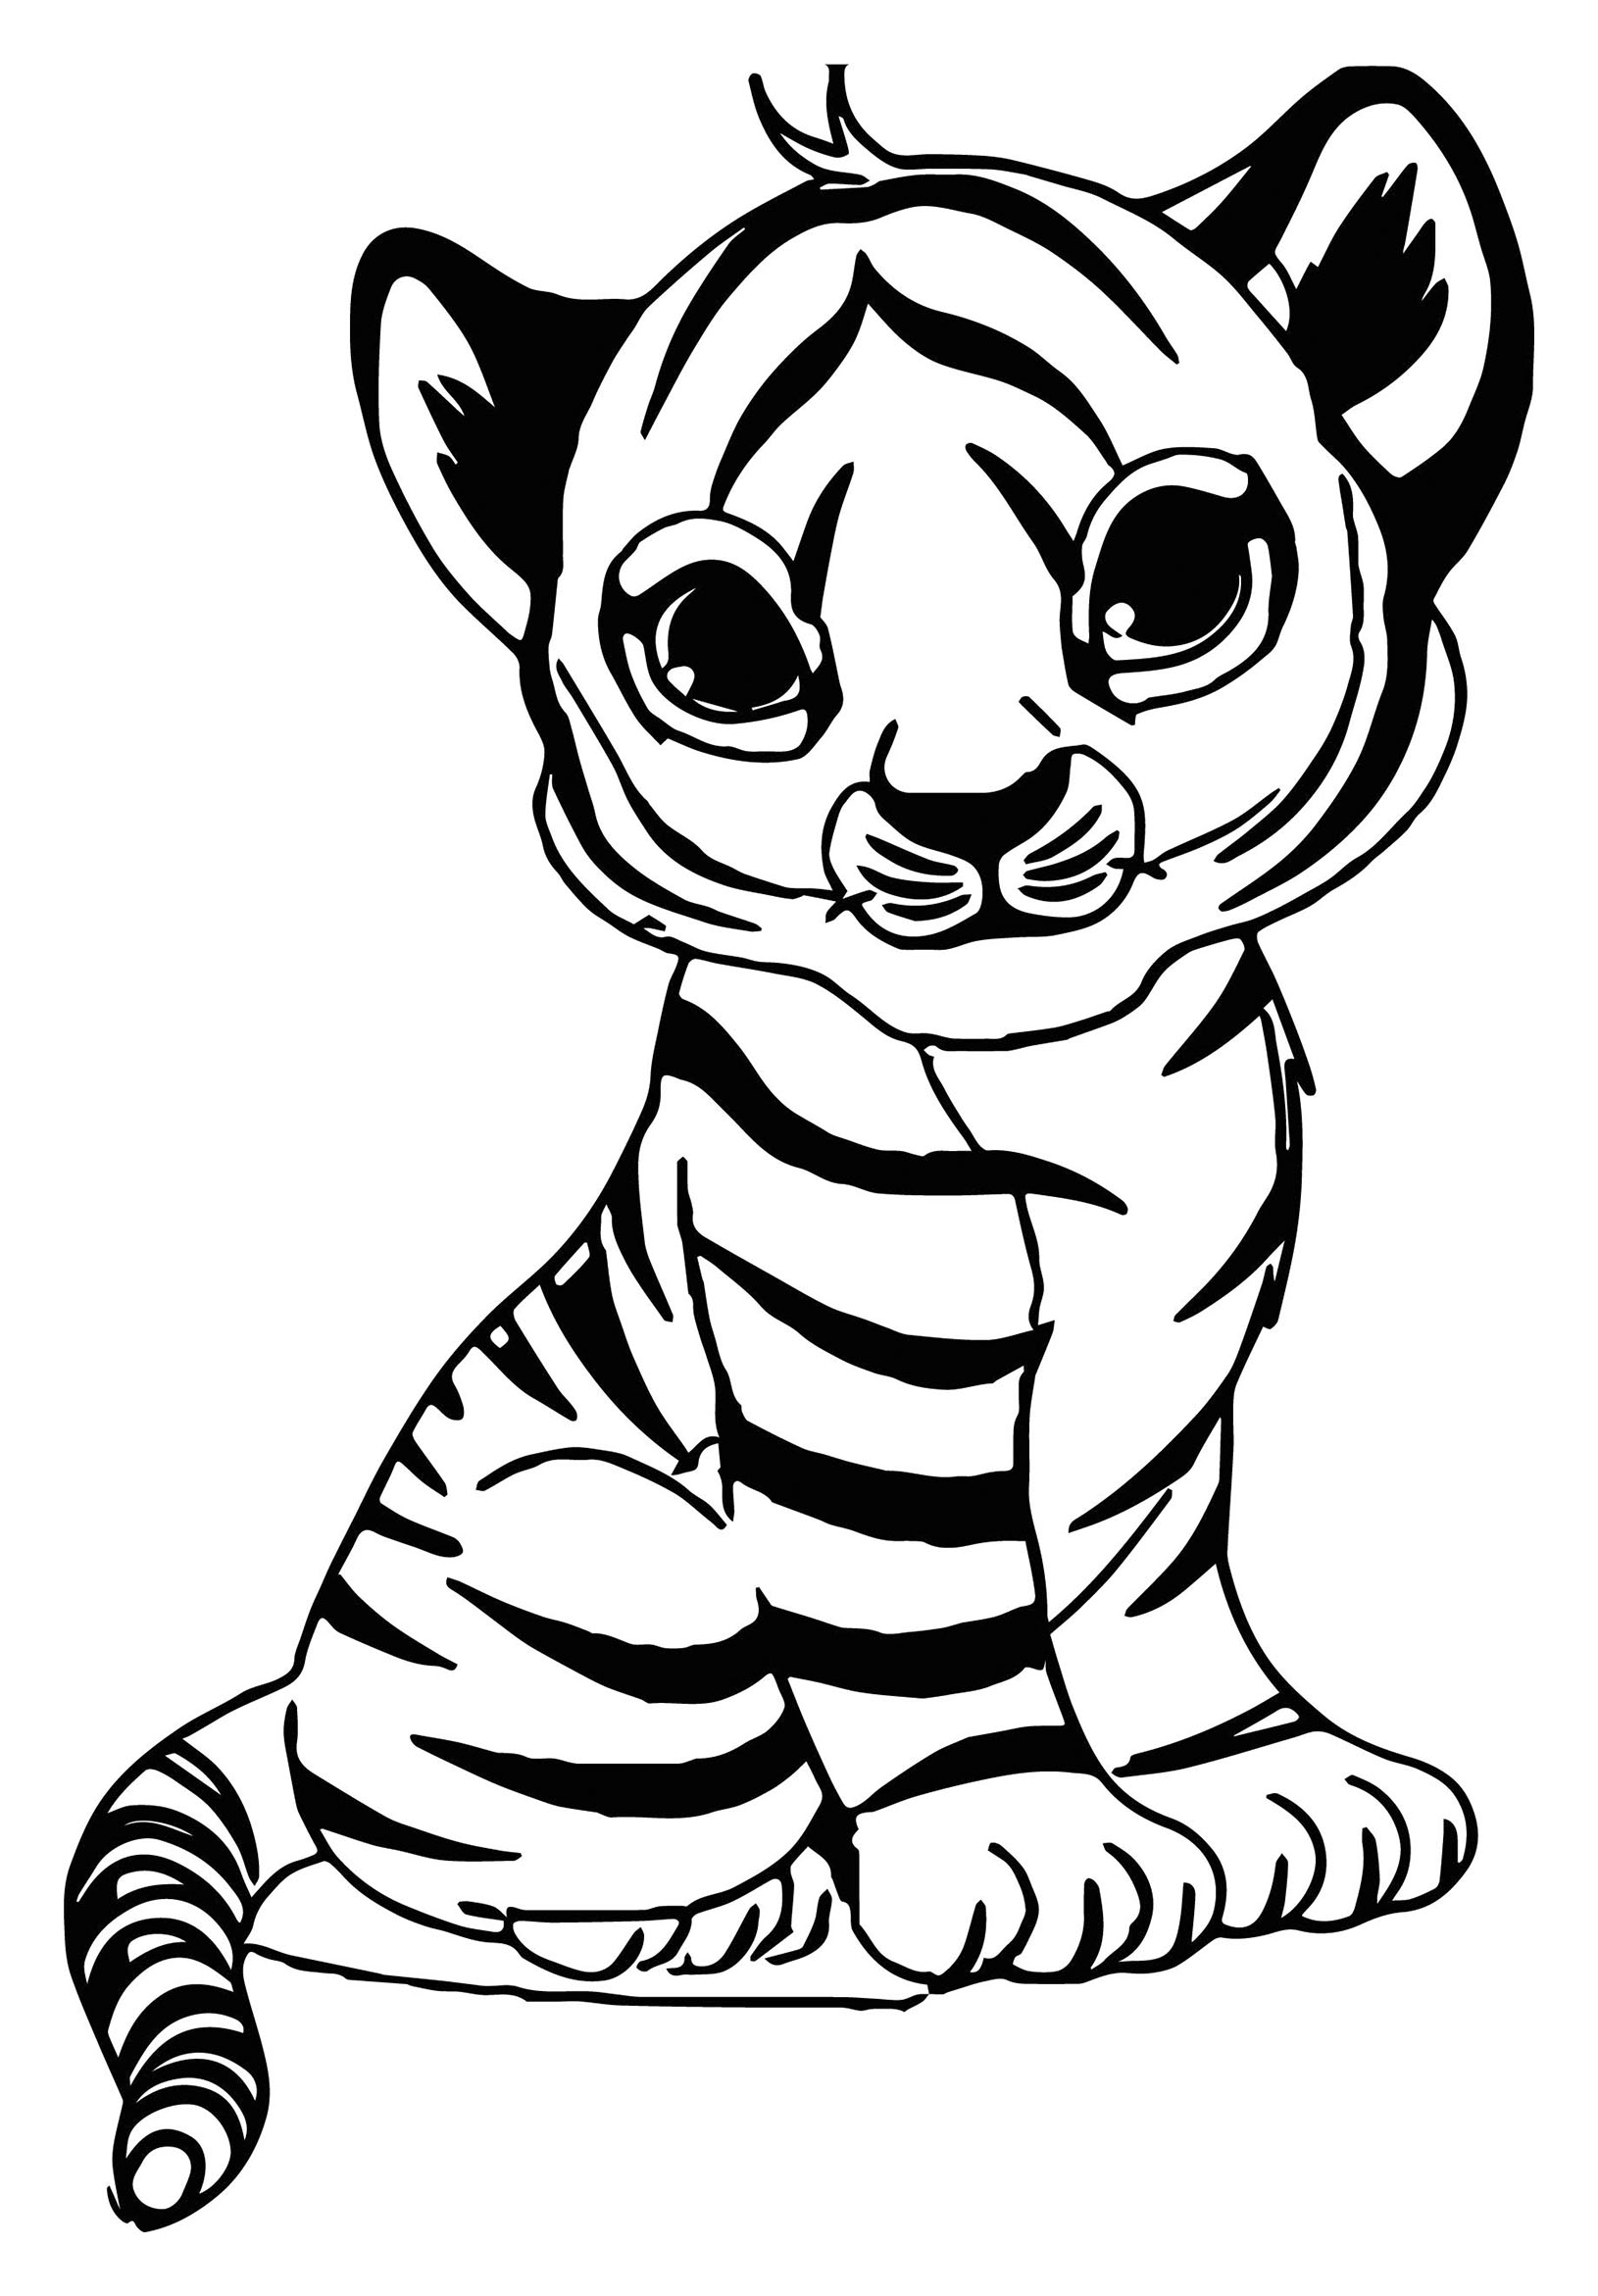 tiger pictures to color tiger coloring pages free download on clipartmag pictures color to tiger